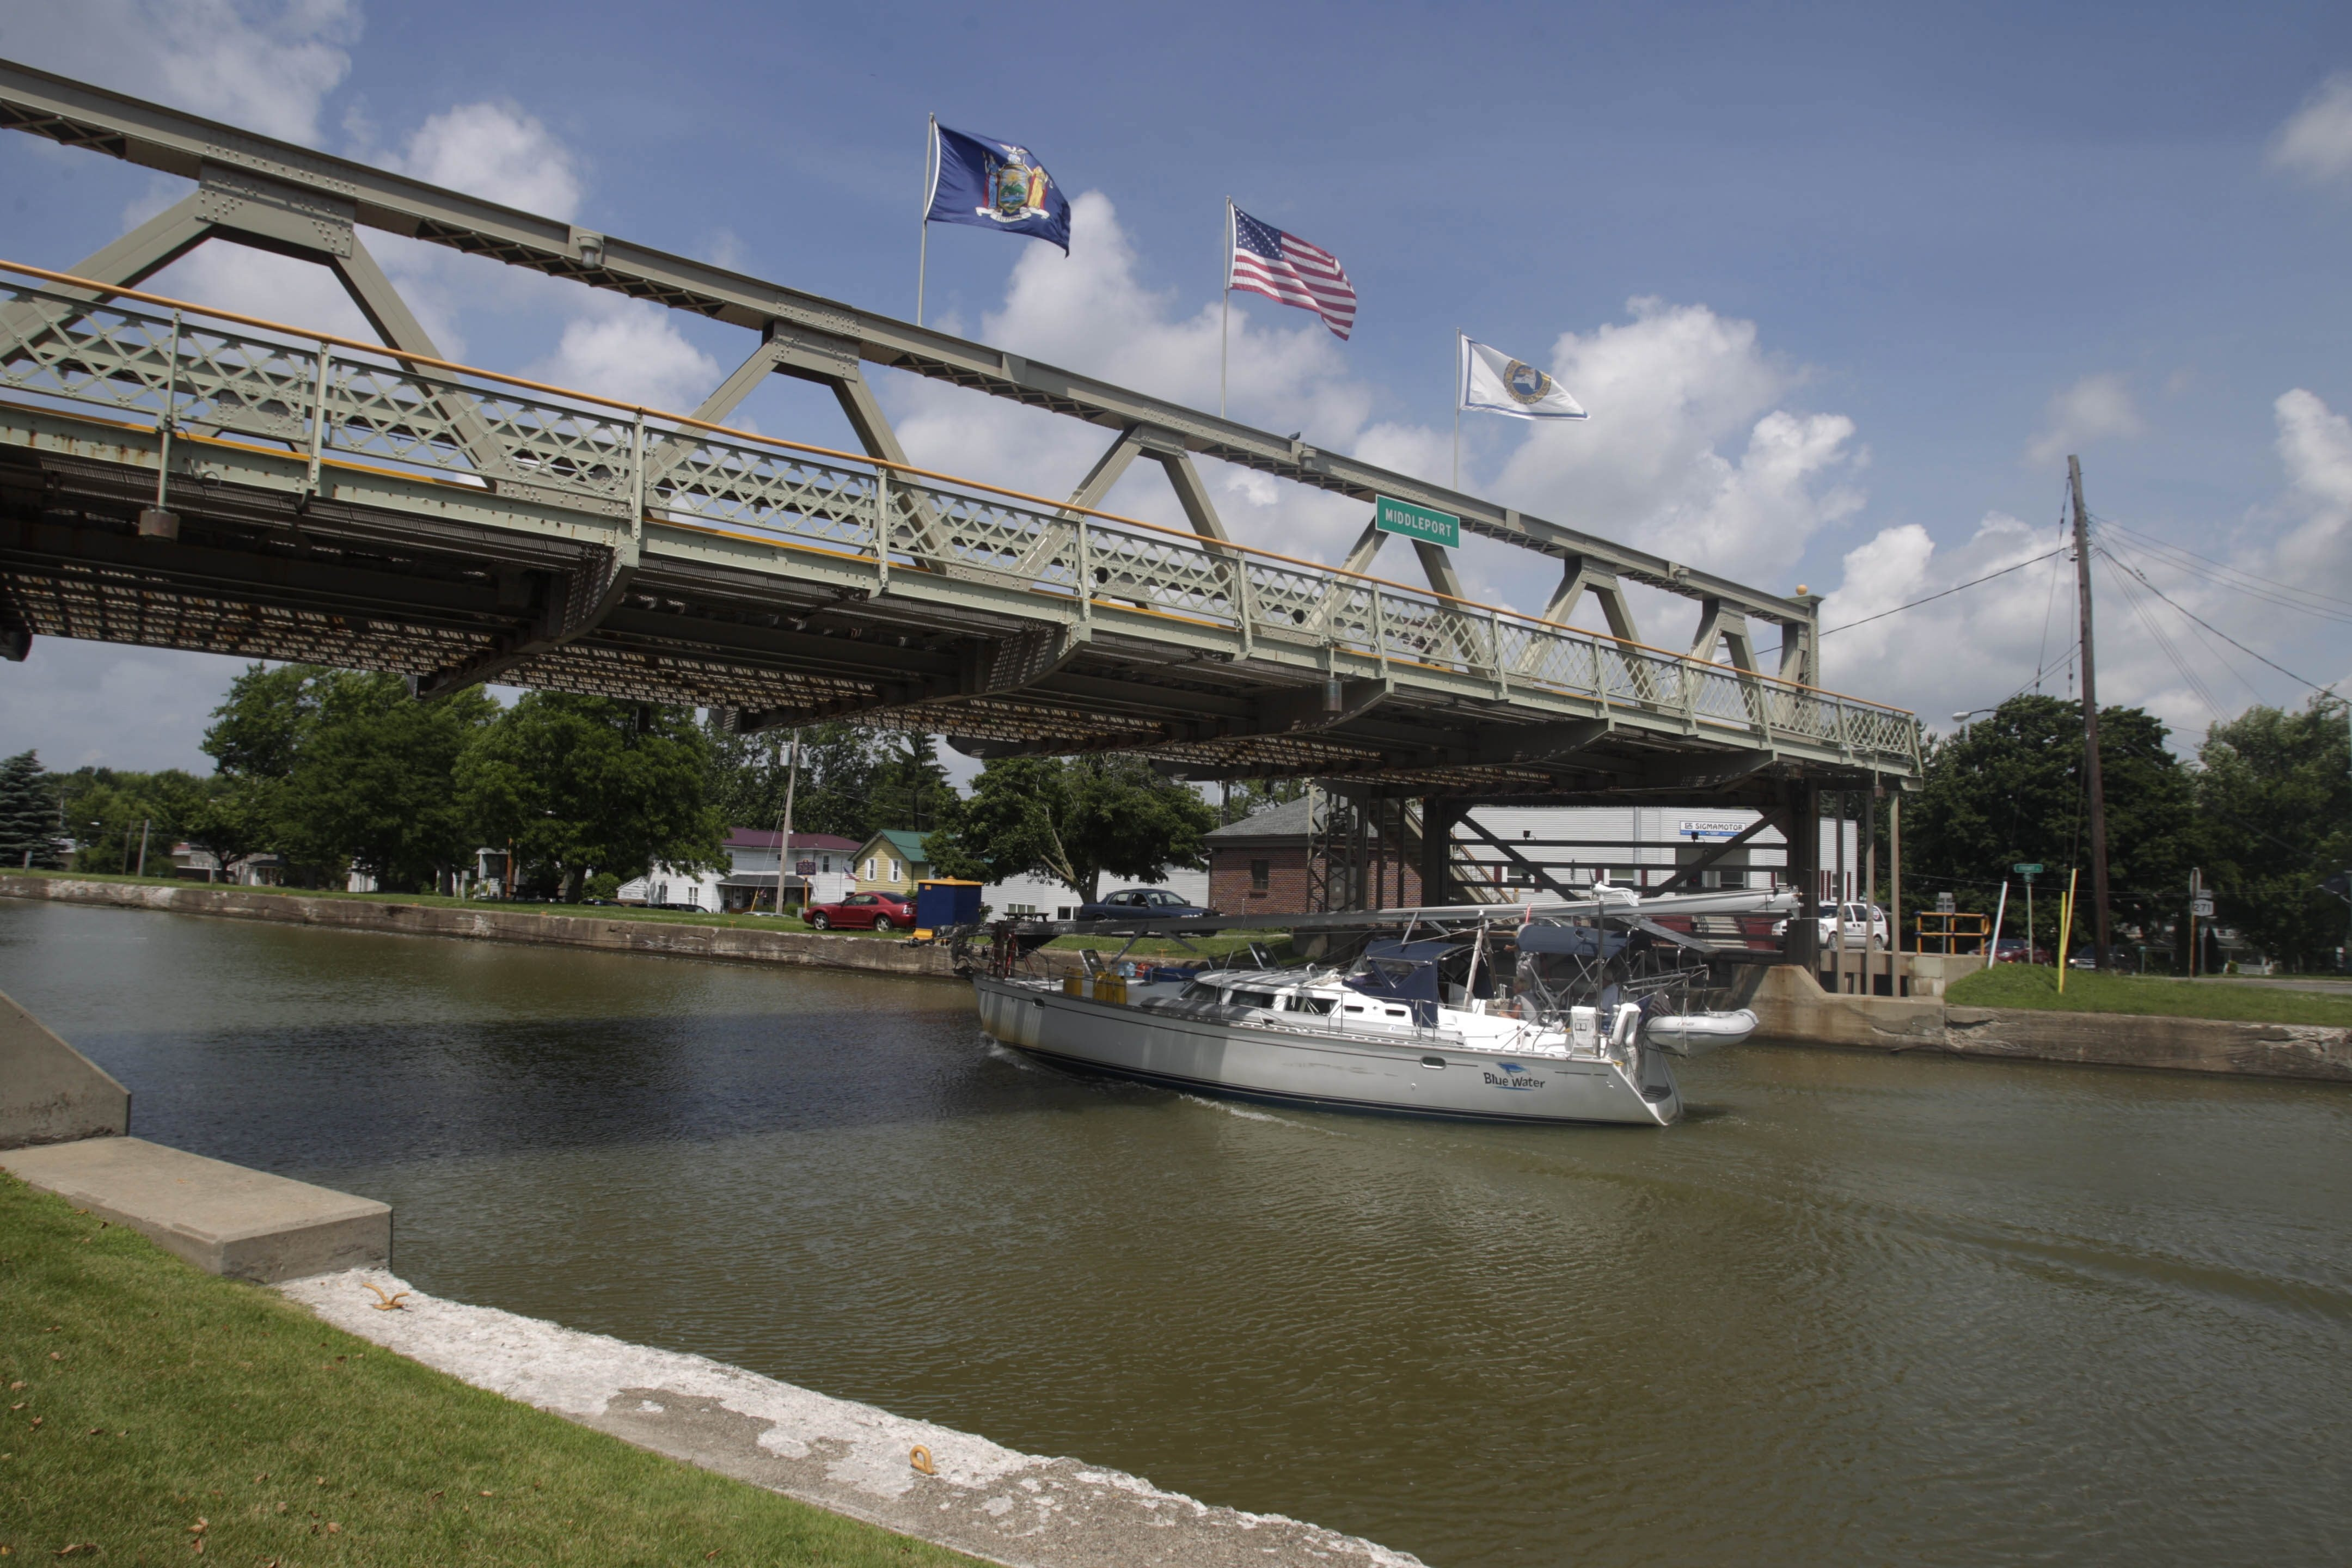 A sailboat passes under the lift bridge in Middleport as it travels on the Erie Canal. The bridge, which is being painted, will be open to participants in Mr. Ed's Race today, race organizers said.